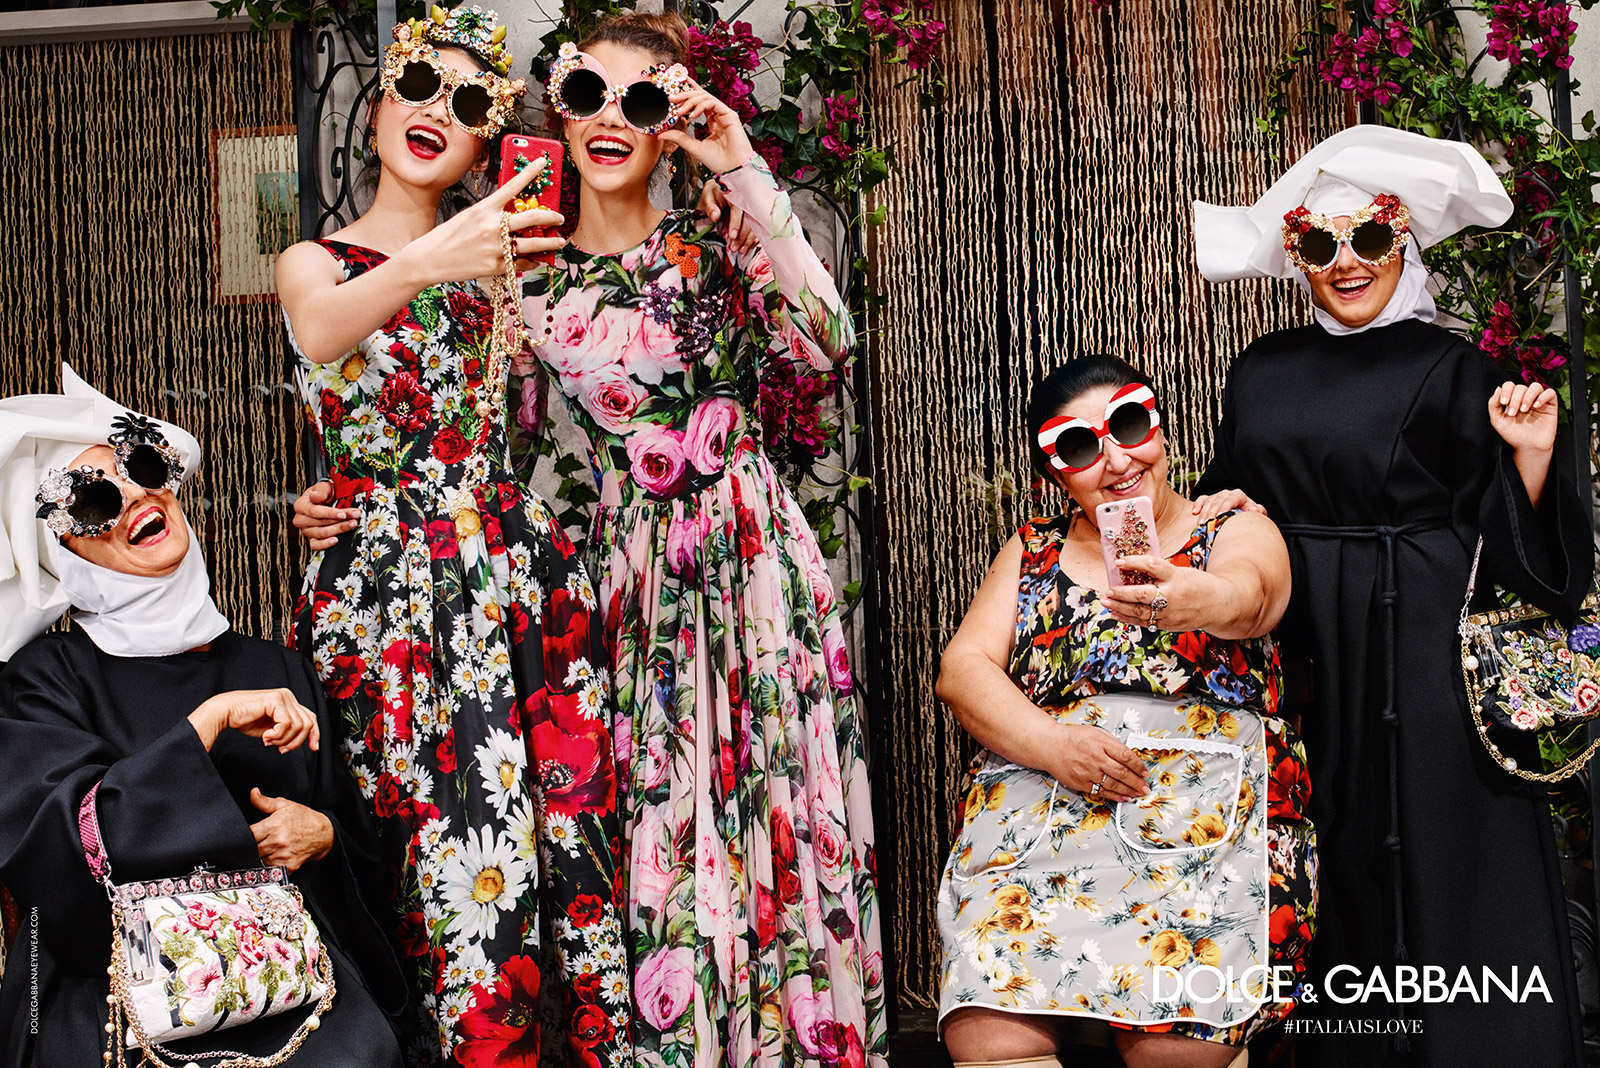 dolce-and-gabbana-summer-2016-sunglasses-women-adv-campaign-04-zoom